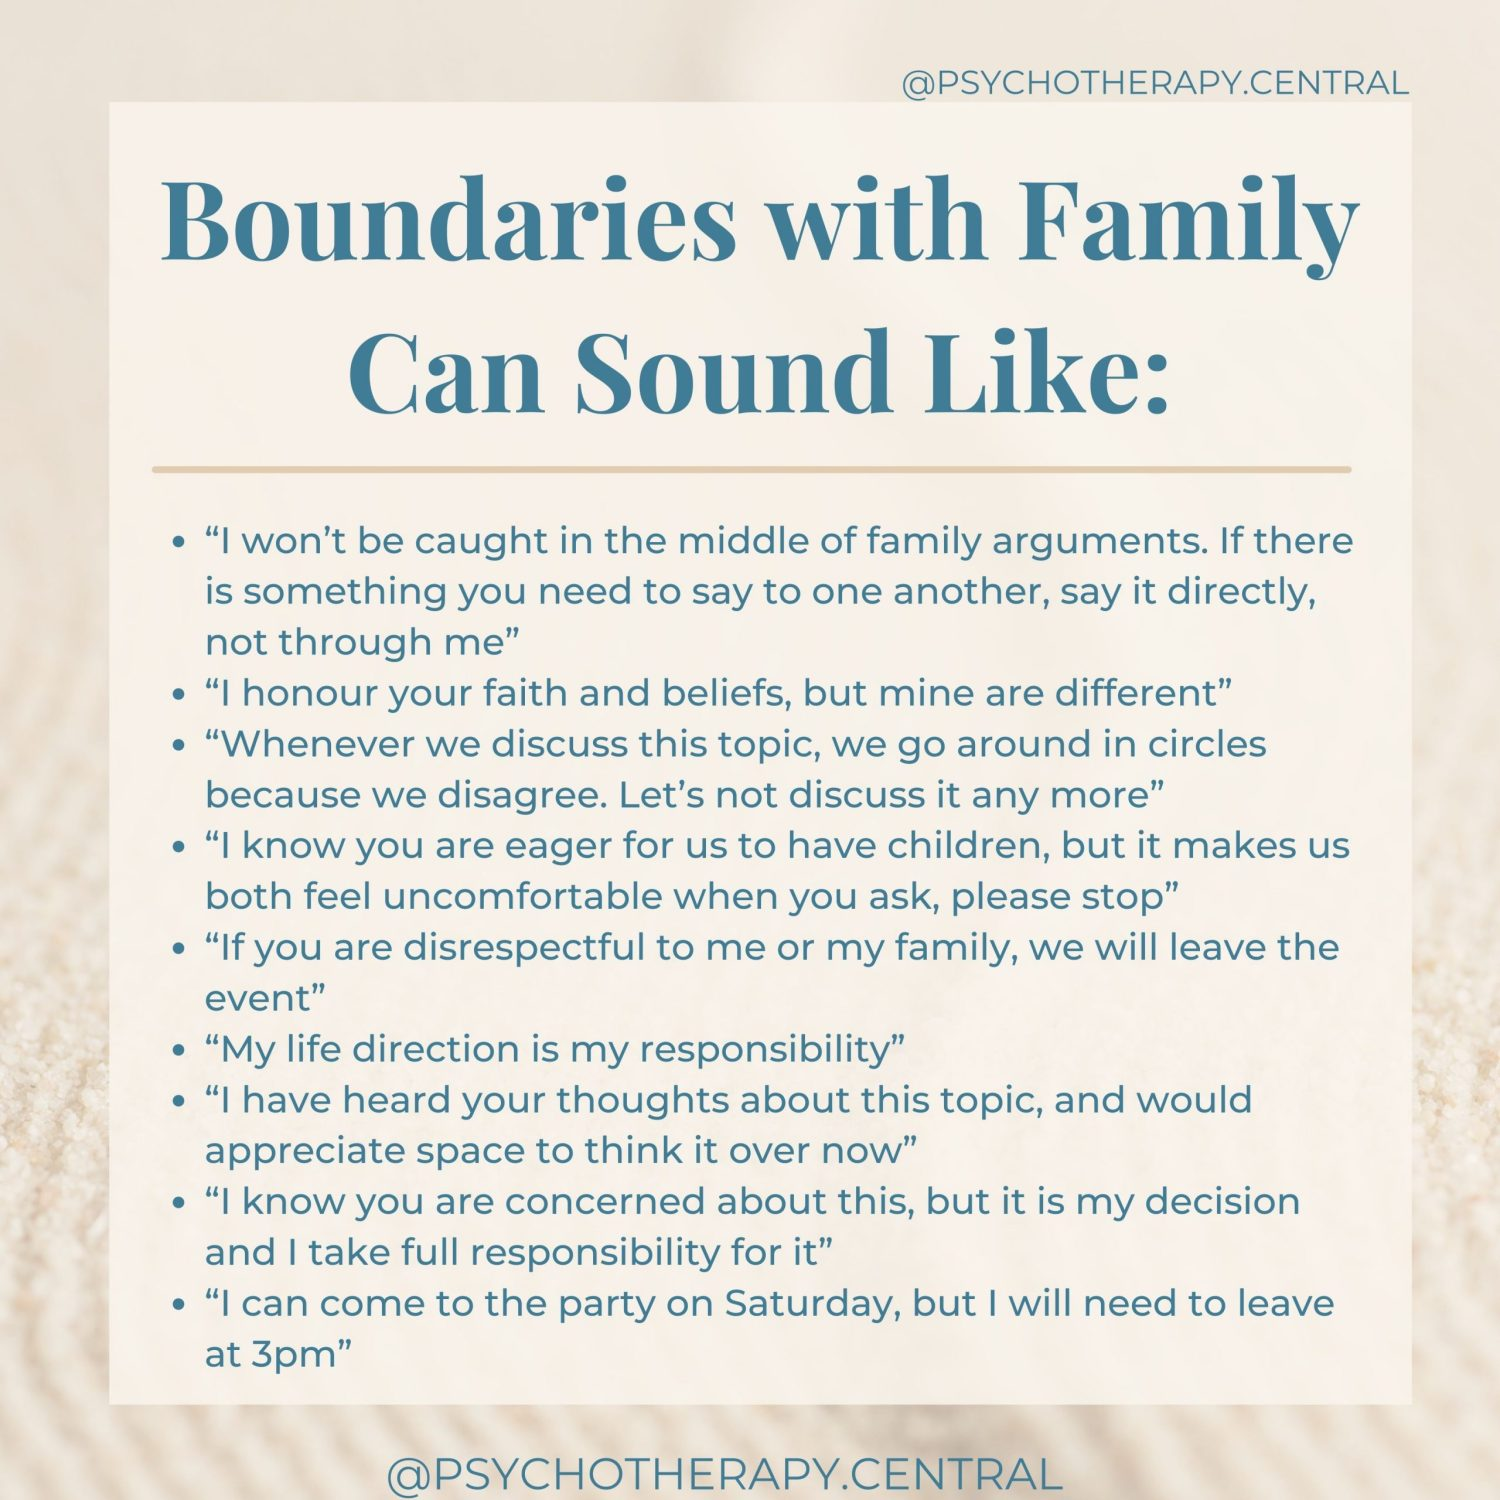 Boundaries with Family Can Sound Like